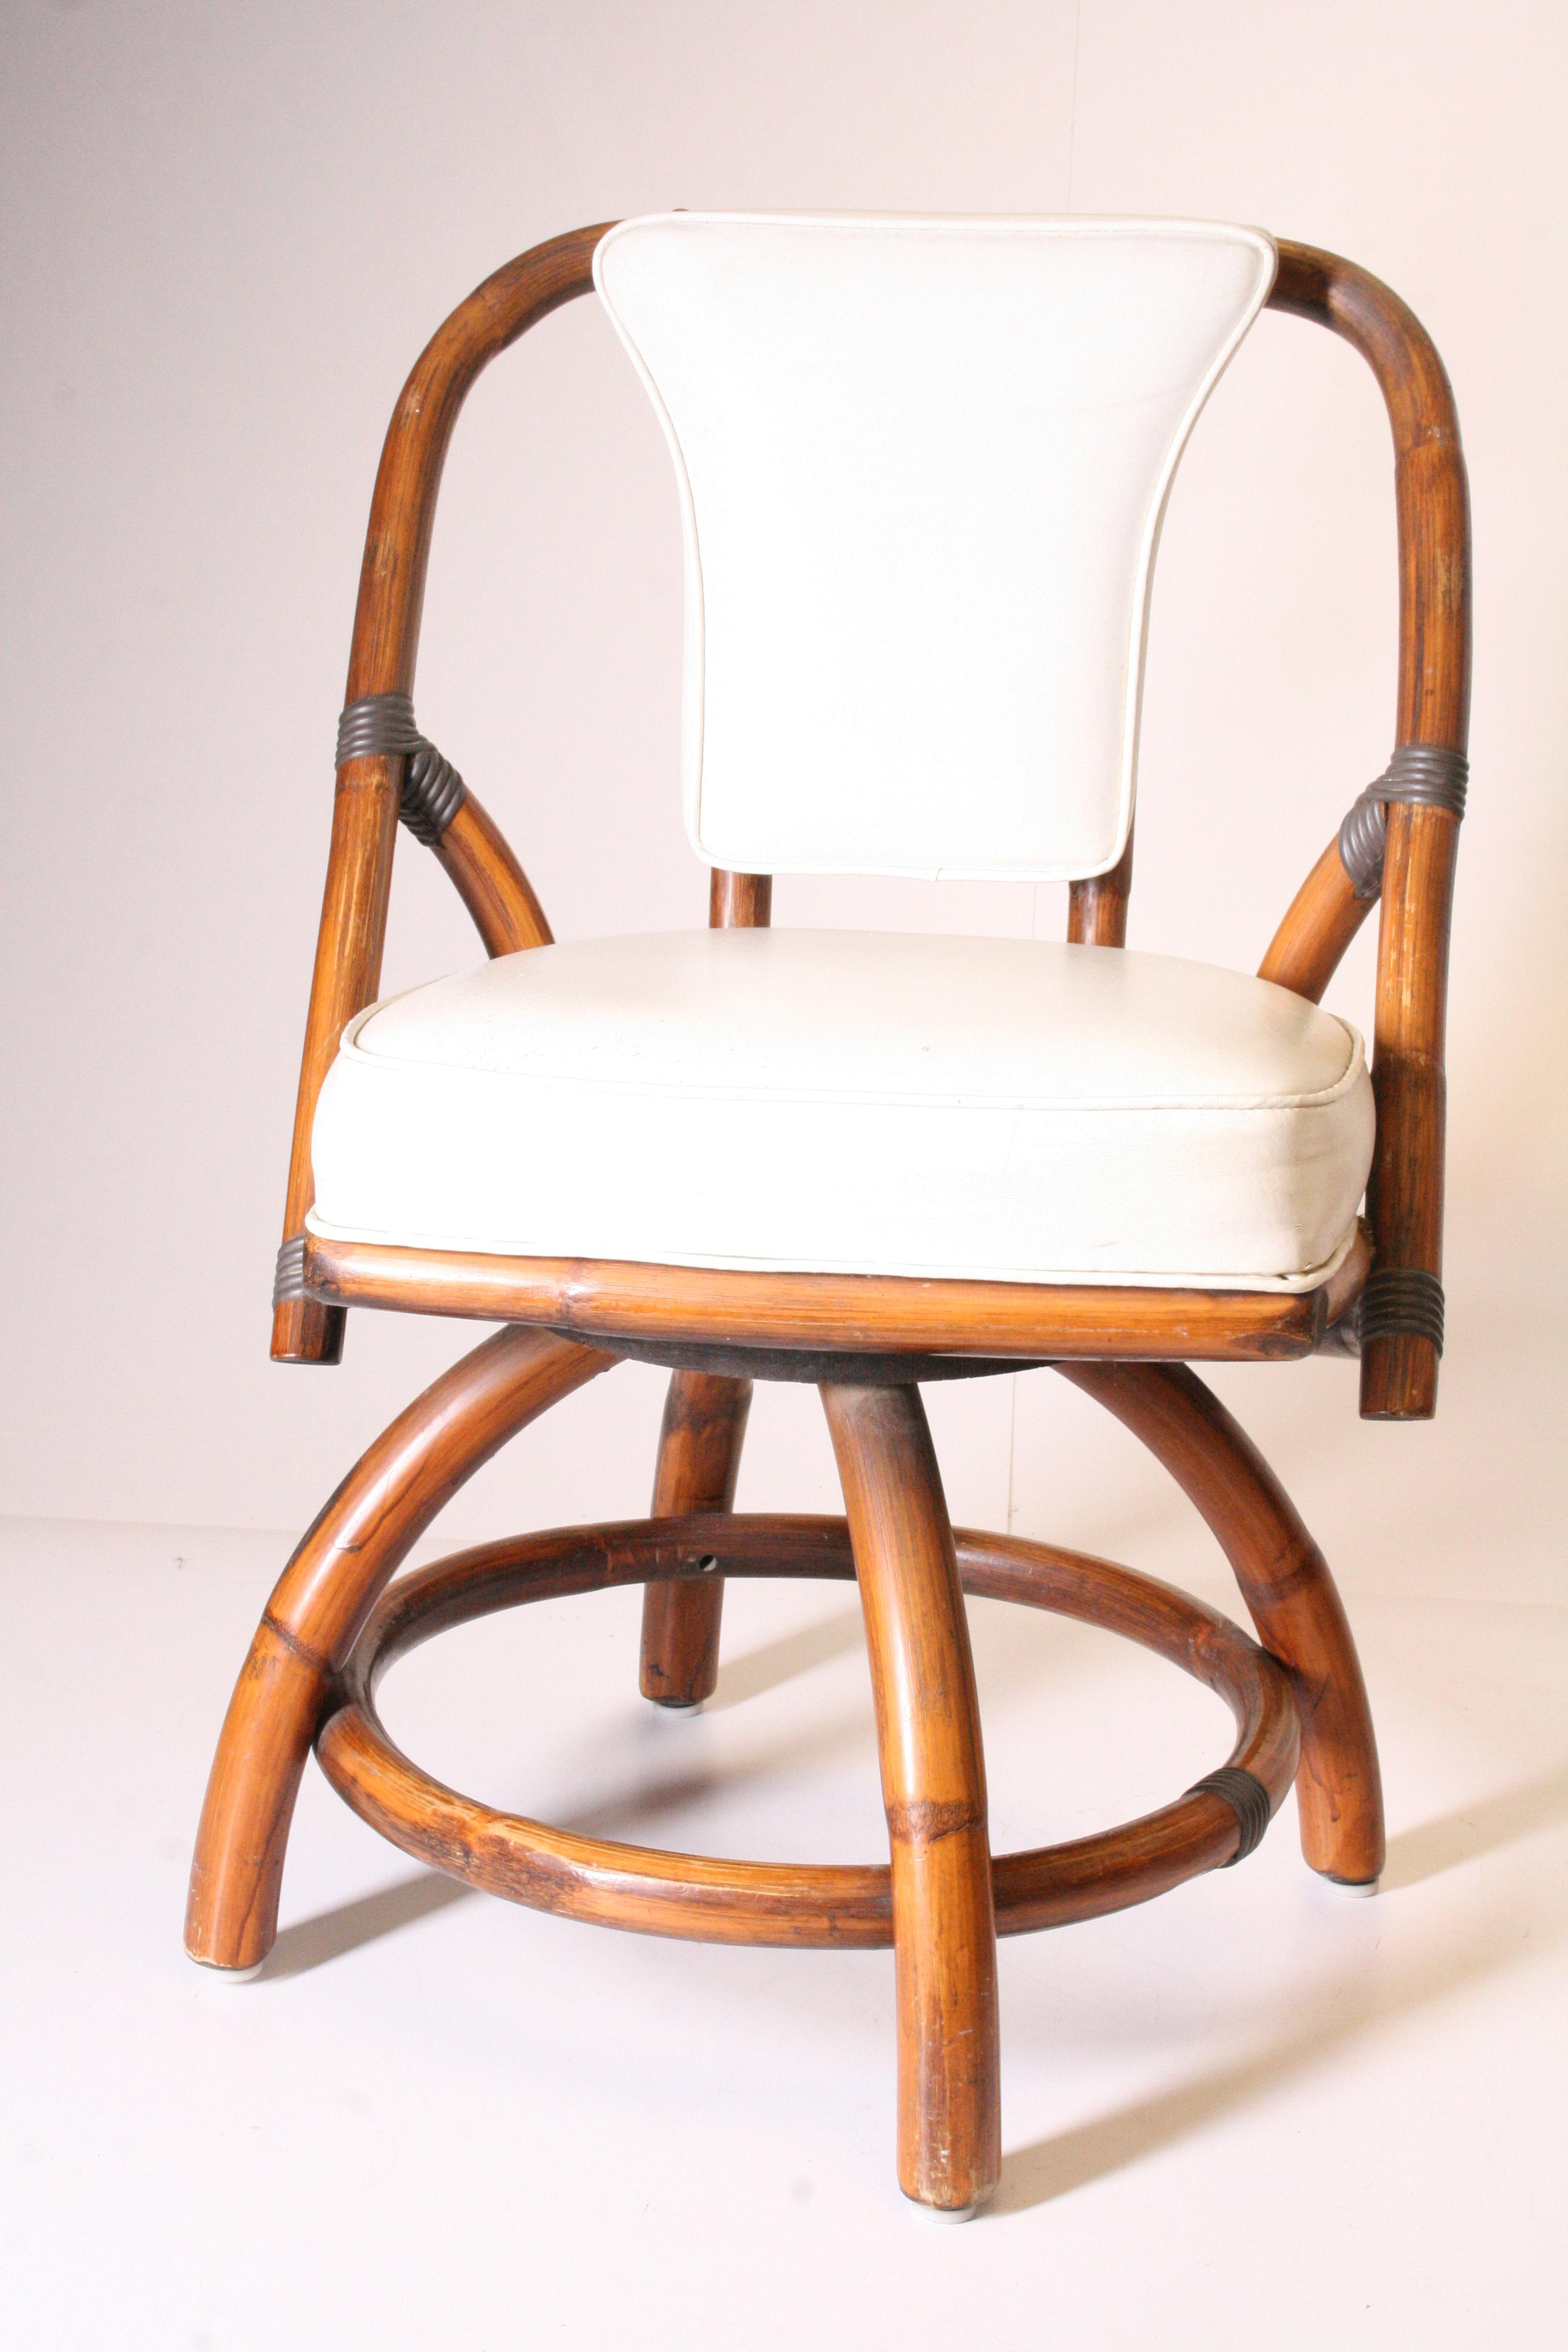 Boho Chic Bamboo U0026 Rattan Swivel Chairs   A Pair   Image 7 Of 11